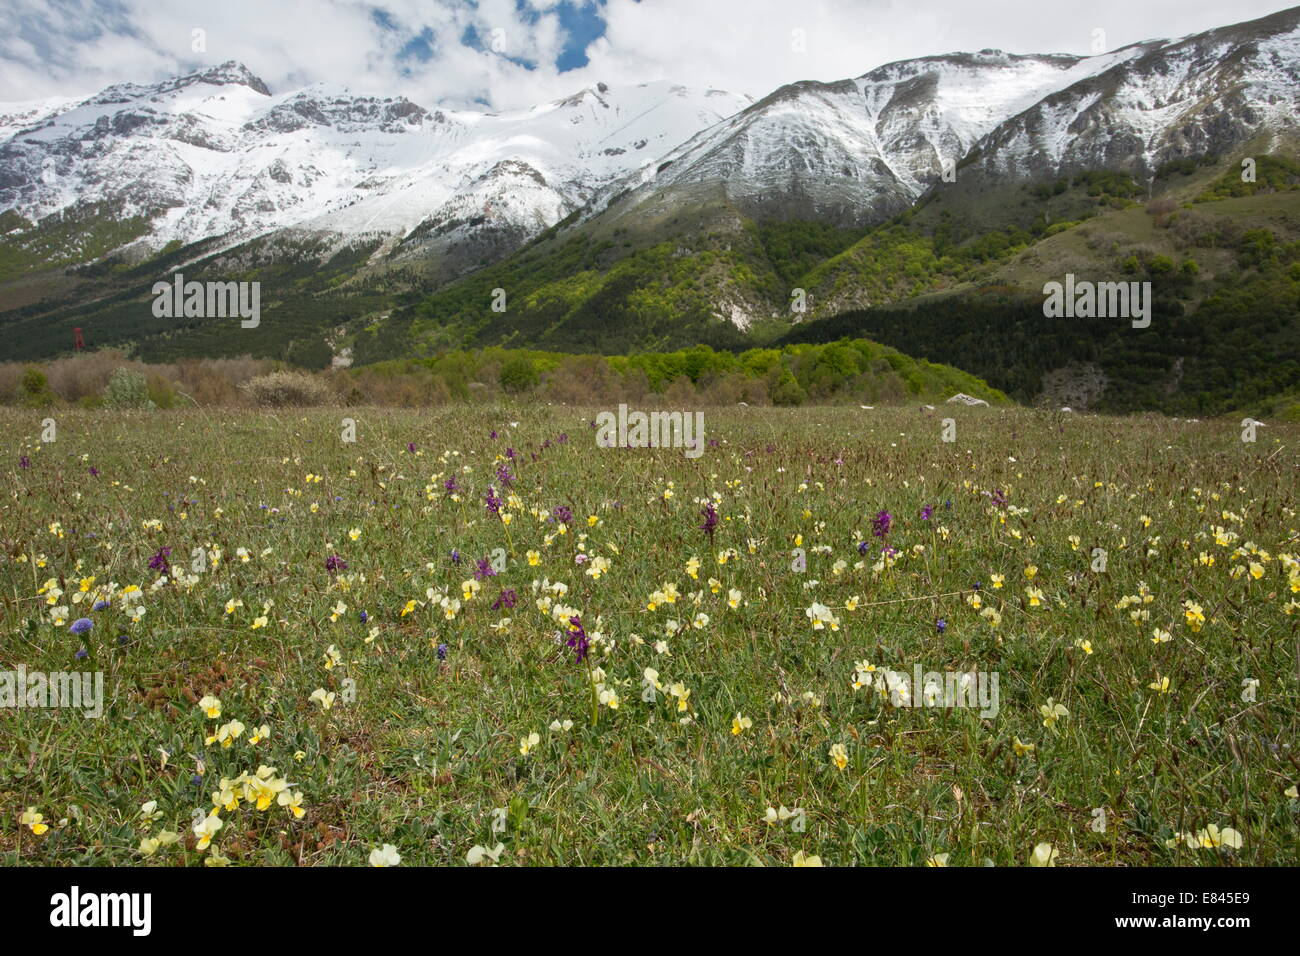 Masses of spring flowers, including Viola eugeniae, in Gran Sasso d'Italia, looking up towards the Monte della - Stock Image